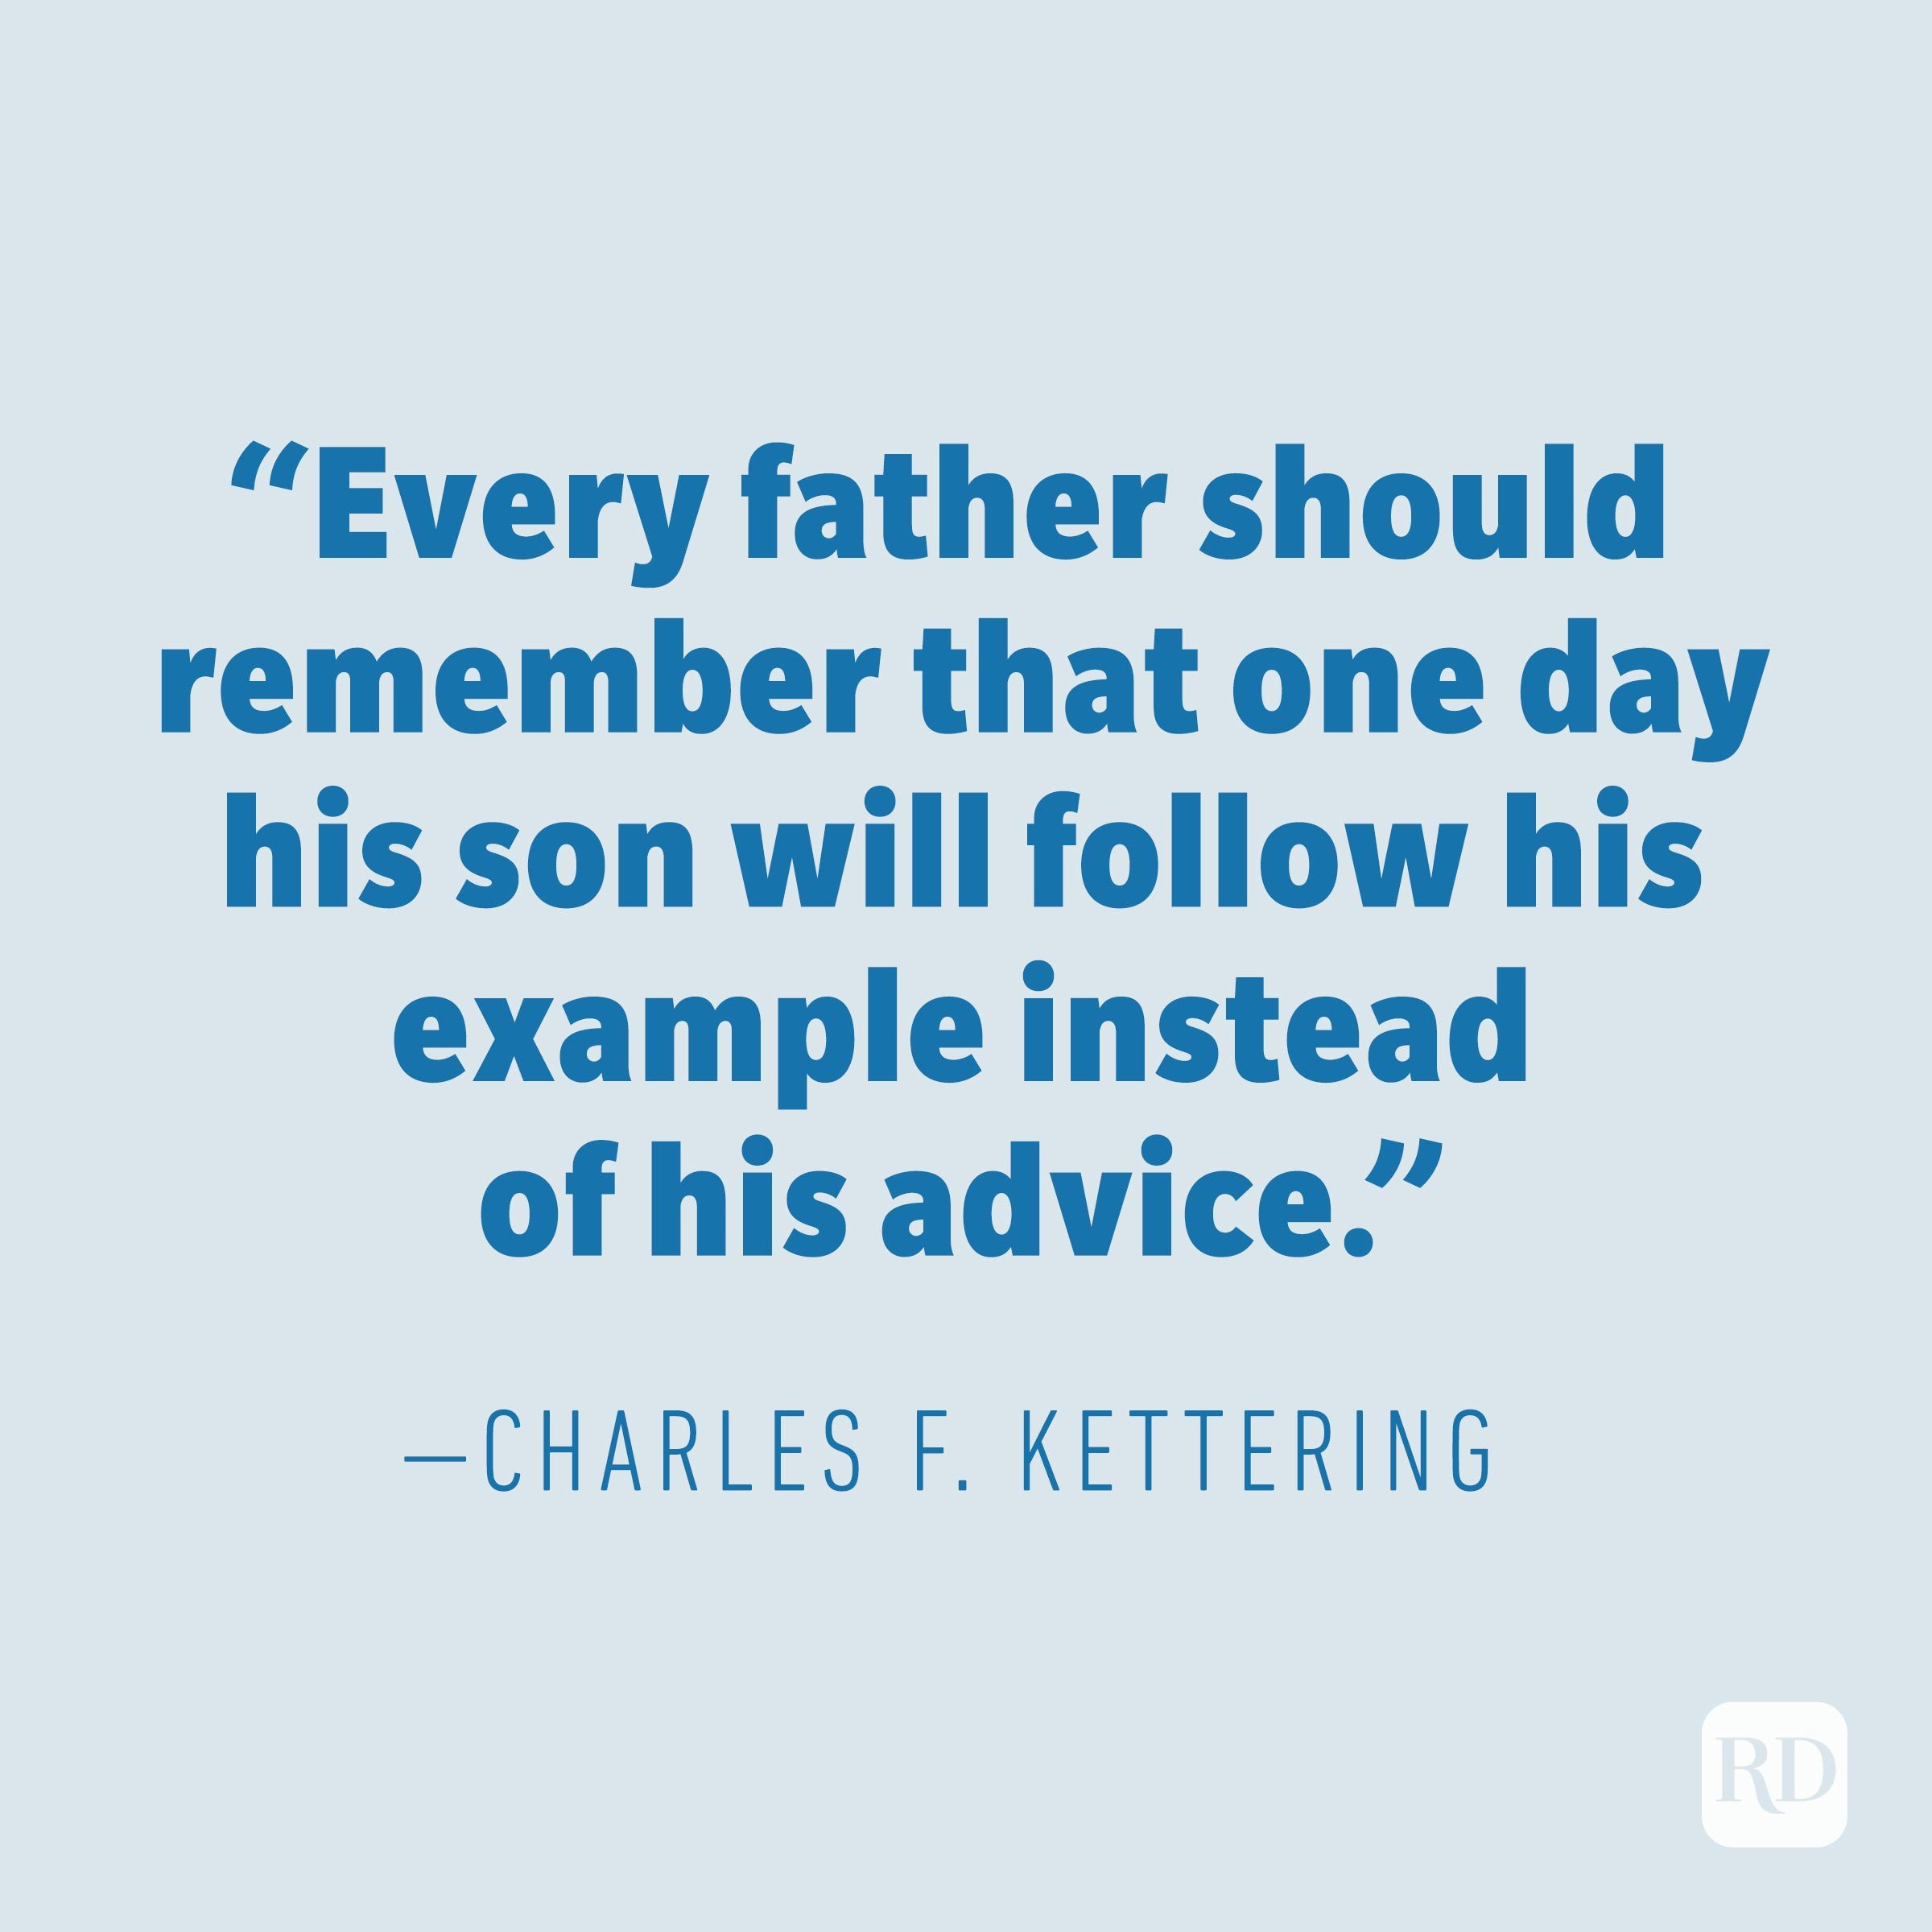 """Every father should remember that one day his son will follow his example instead of his advice."" — CHARLES F. KETTERING"